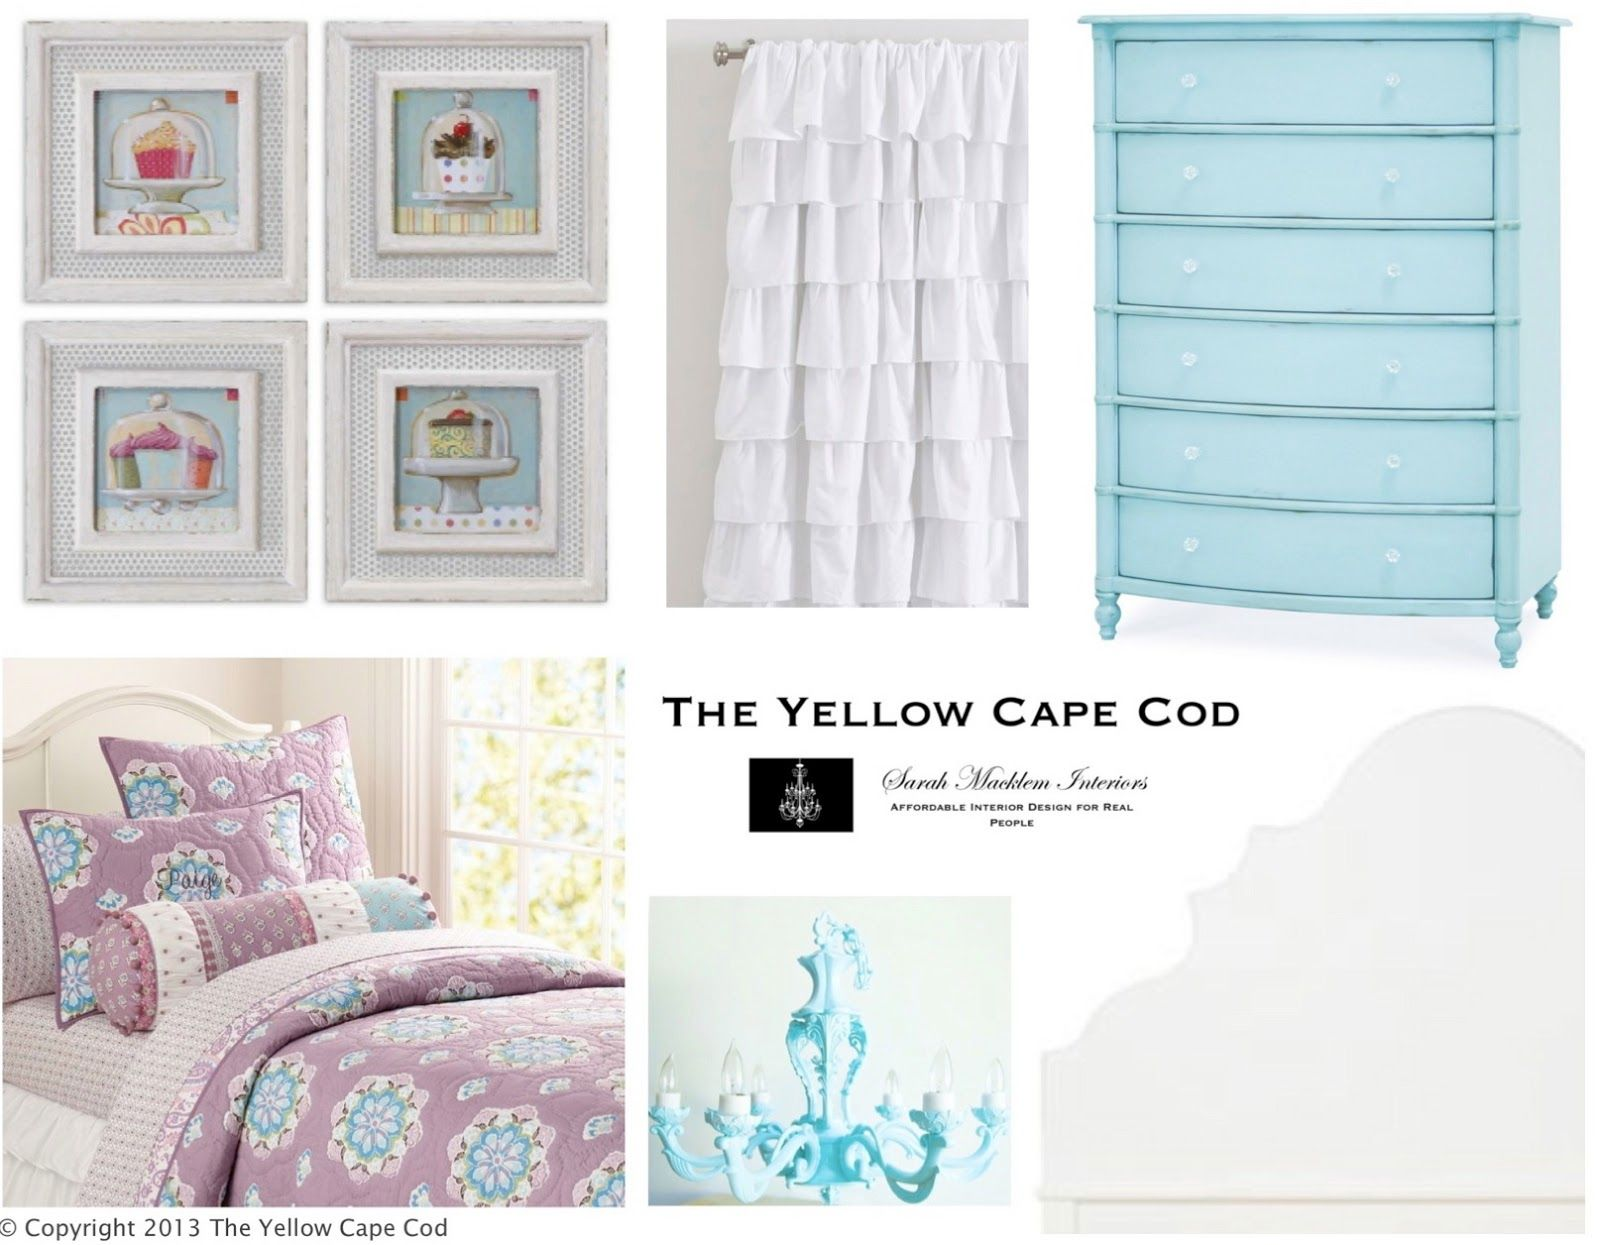 The yellow cape cod turquiose and lavender girls room inspired by